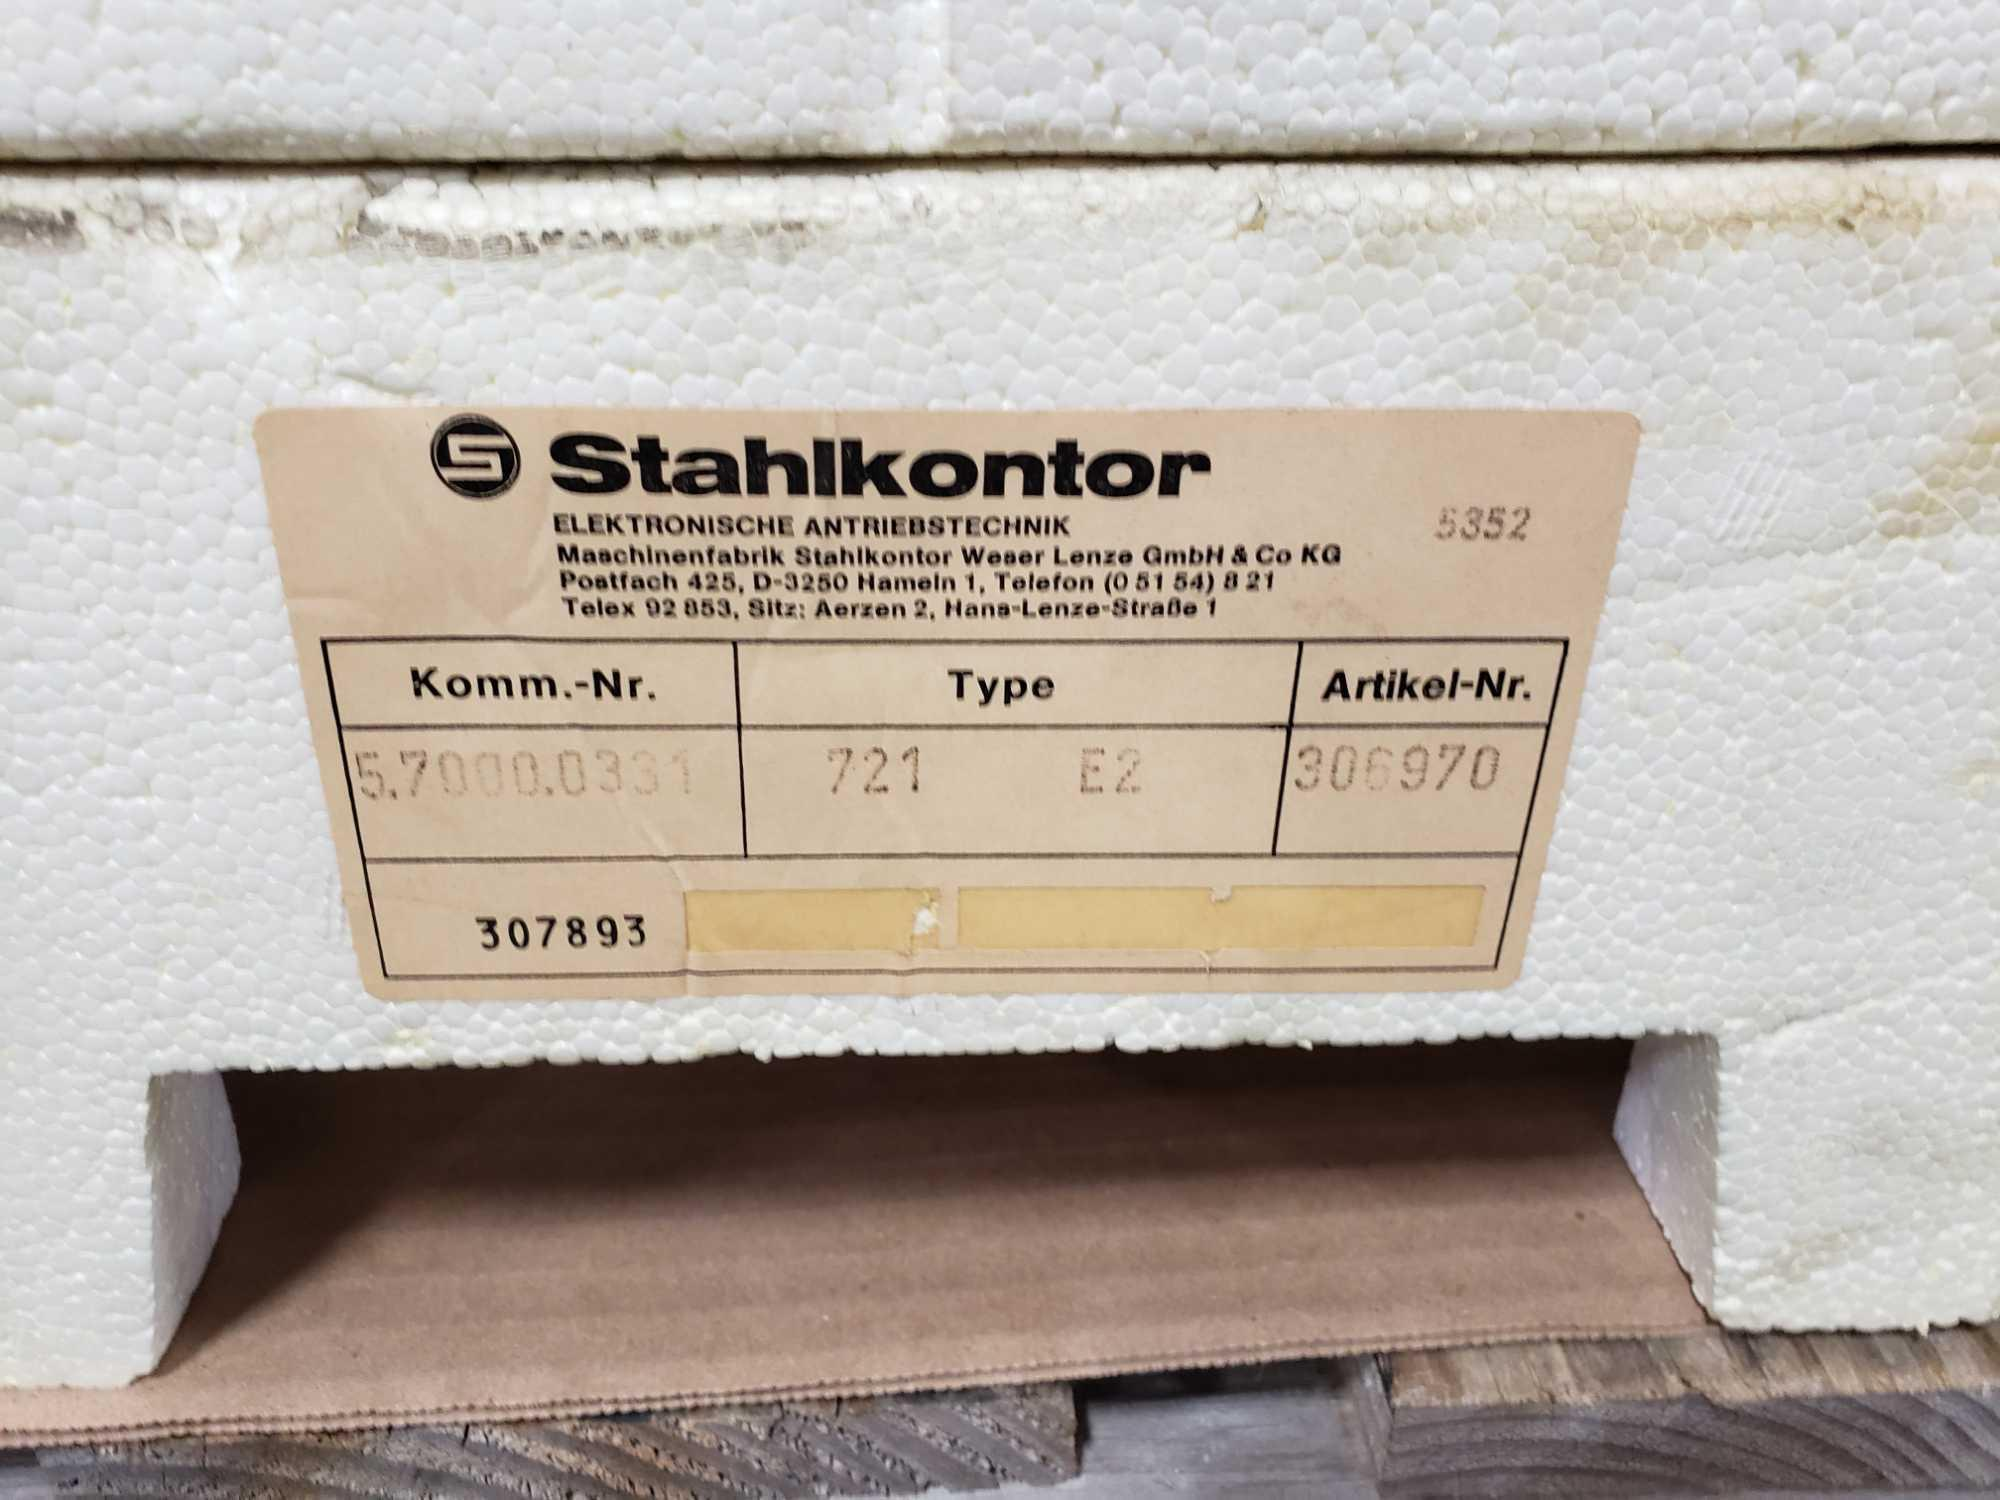 Stahlkontor control model 721-E2. New as pictured. - Image 3 of 3